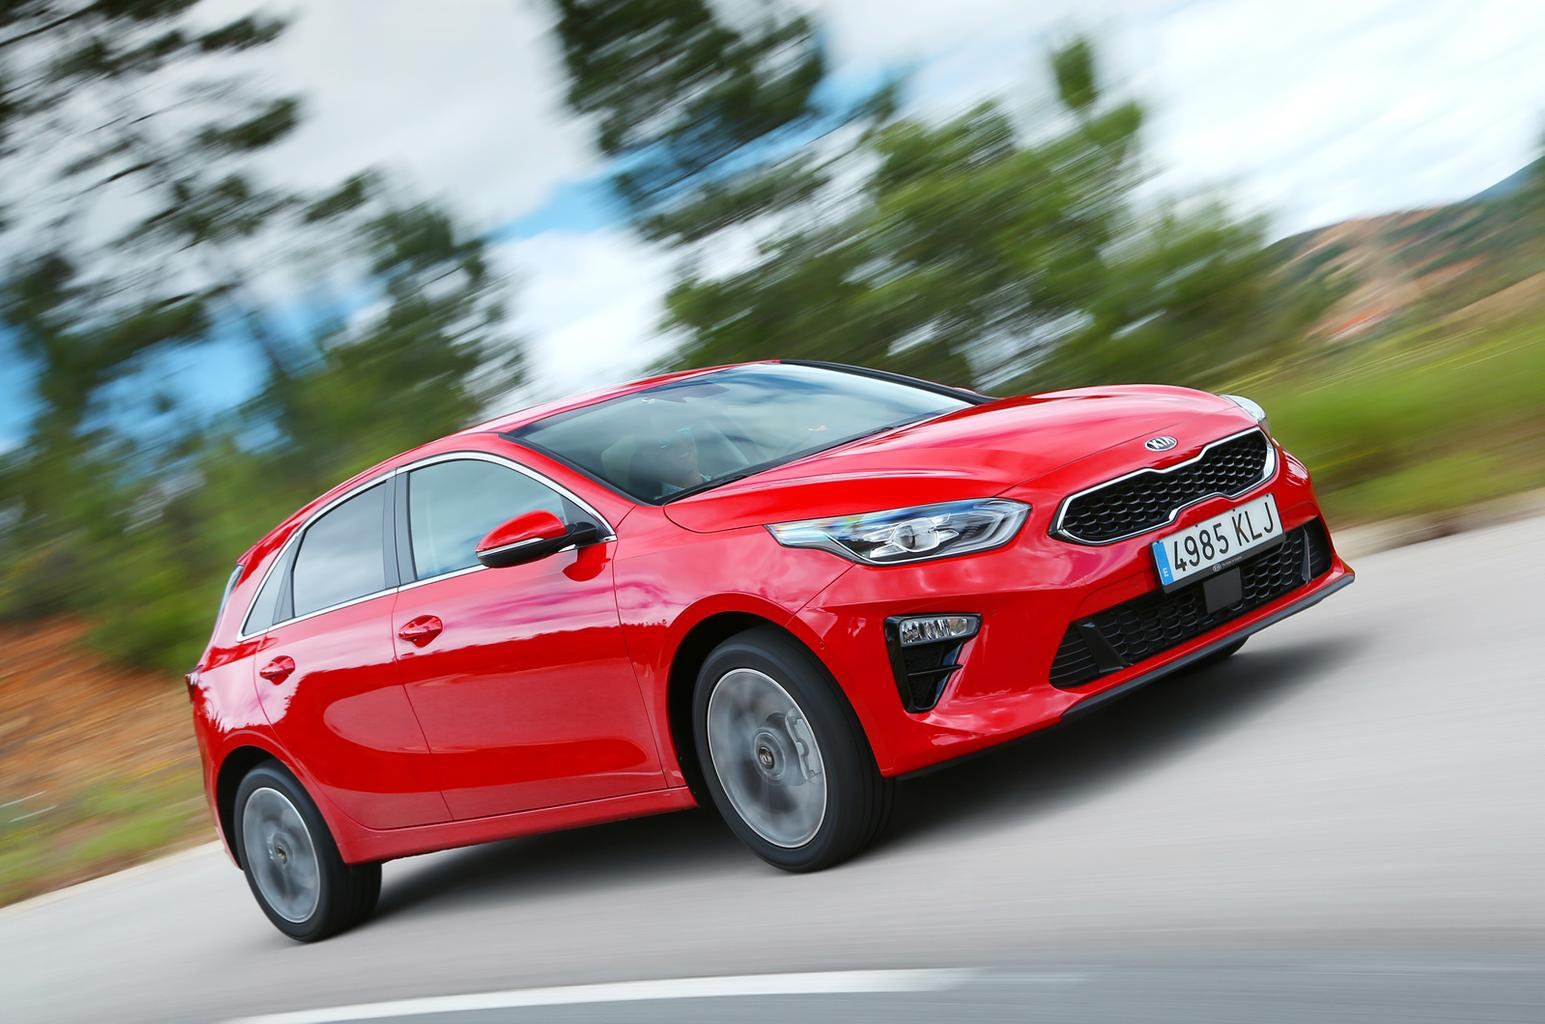 2018 Kia Ceed review – price, specs and release date